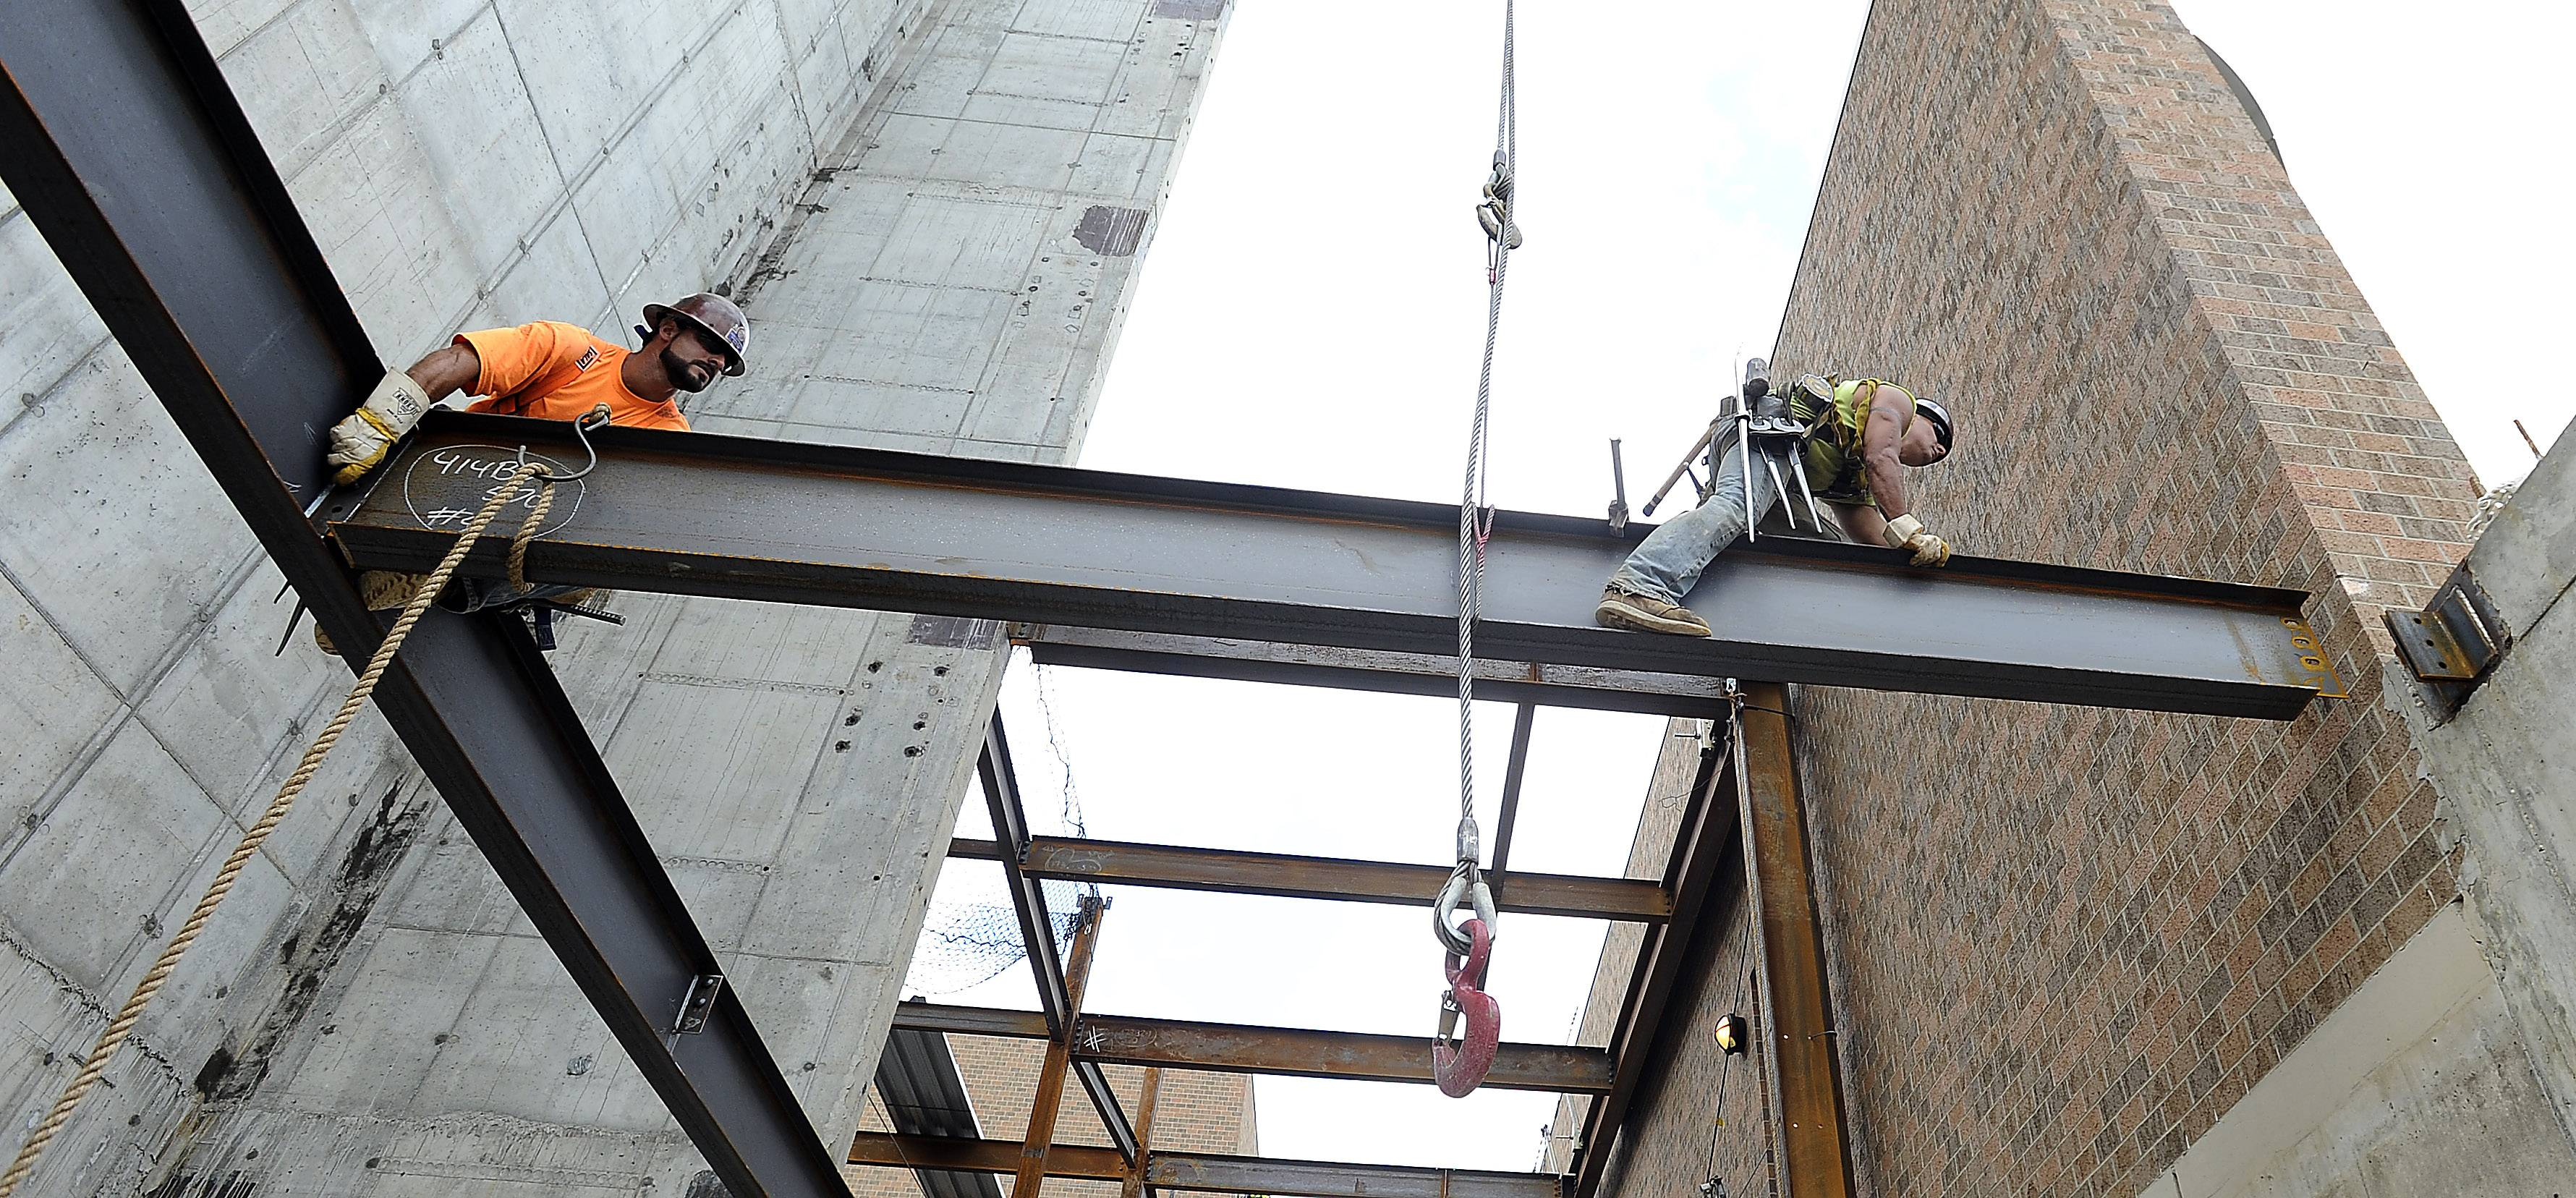 Tony Mici and Joe Gonzalez position a steel beam as part of the work to build a new entrance at Advocate Good Shepherd Hospital near Lake Barrington. The entrance is part of a $247 million hospital modernization project expected to be complete in 2017.